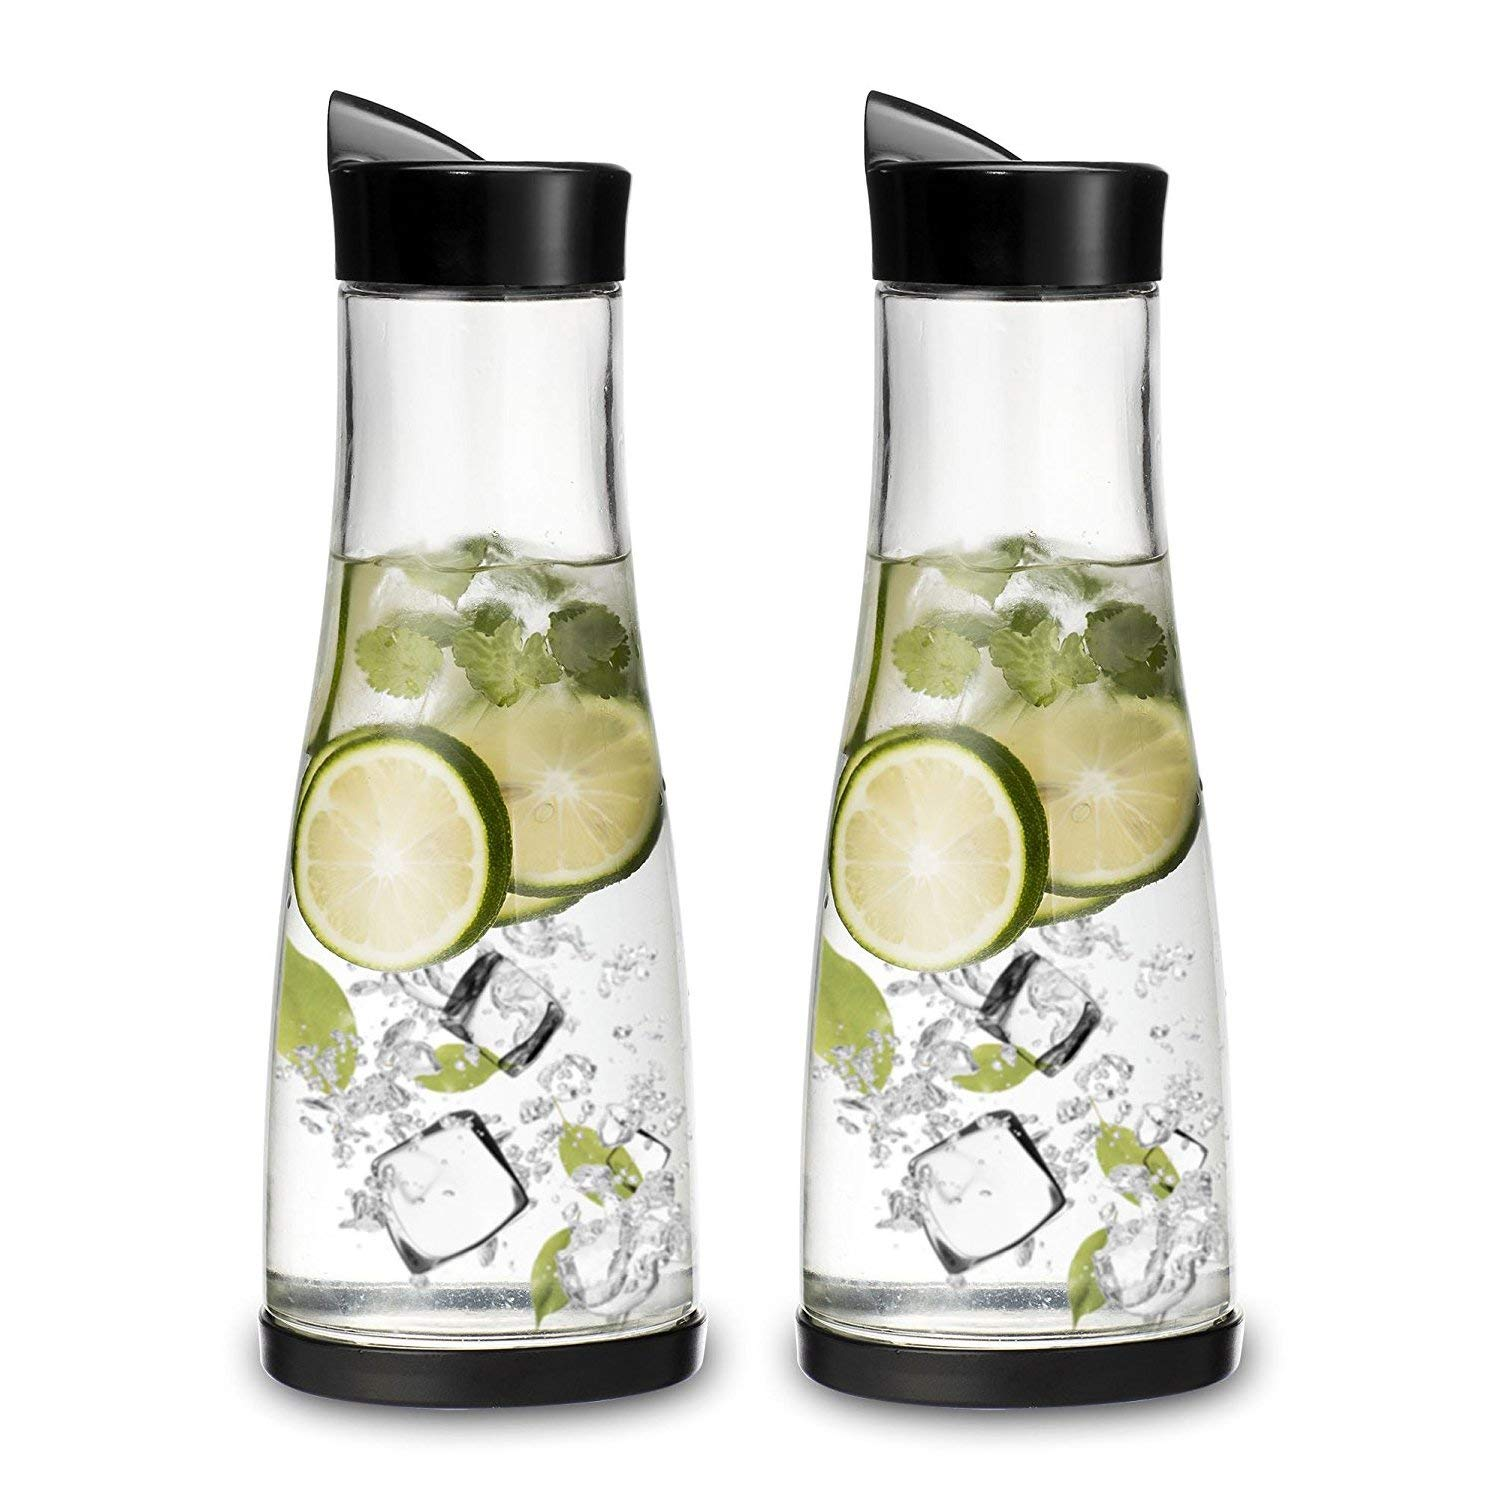 Chefoh Glass Water Carafe With Lid And Protective Base, EZ Pour Drip Spout 1 Liter/ 33.8 Oz, Fridge Water Pitcher Bottle Dispenser, Great For Juice, Lemonade, Iced Tea, Milk, Wine (2)